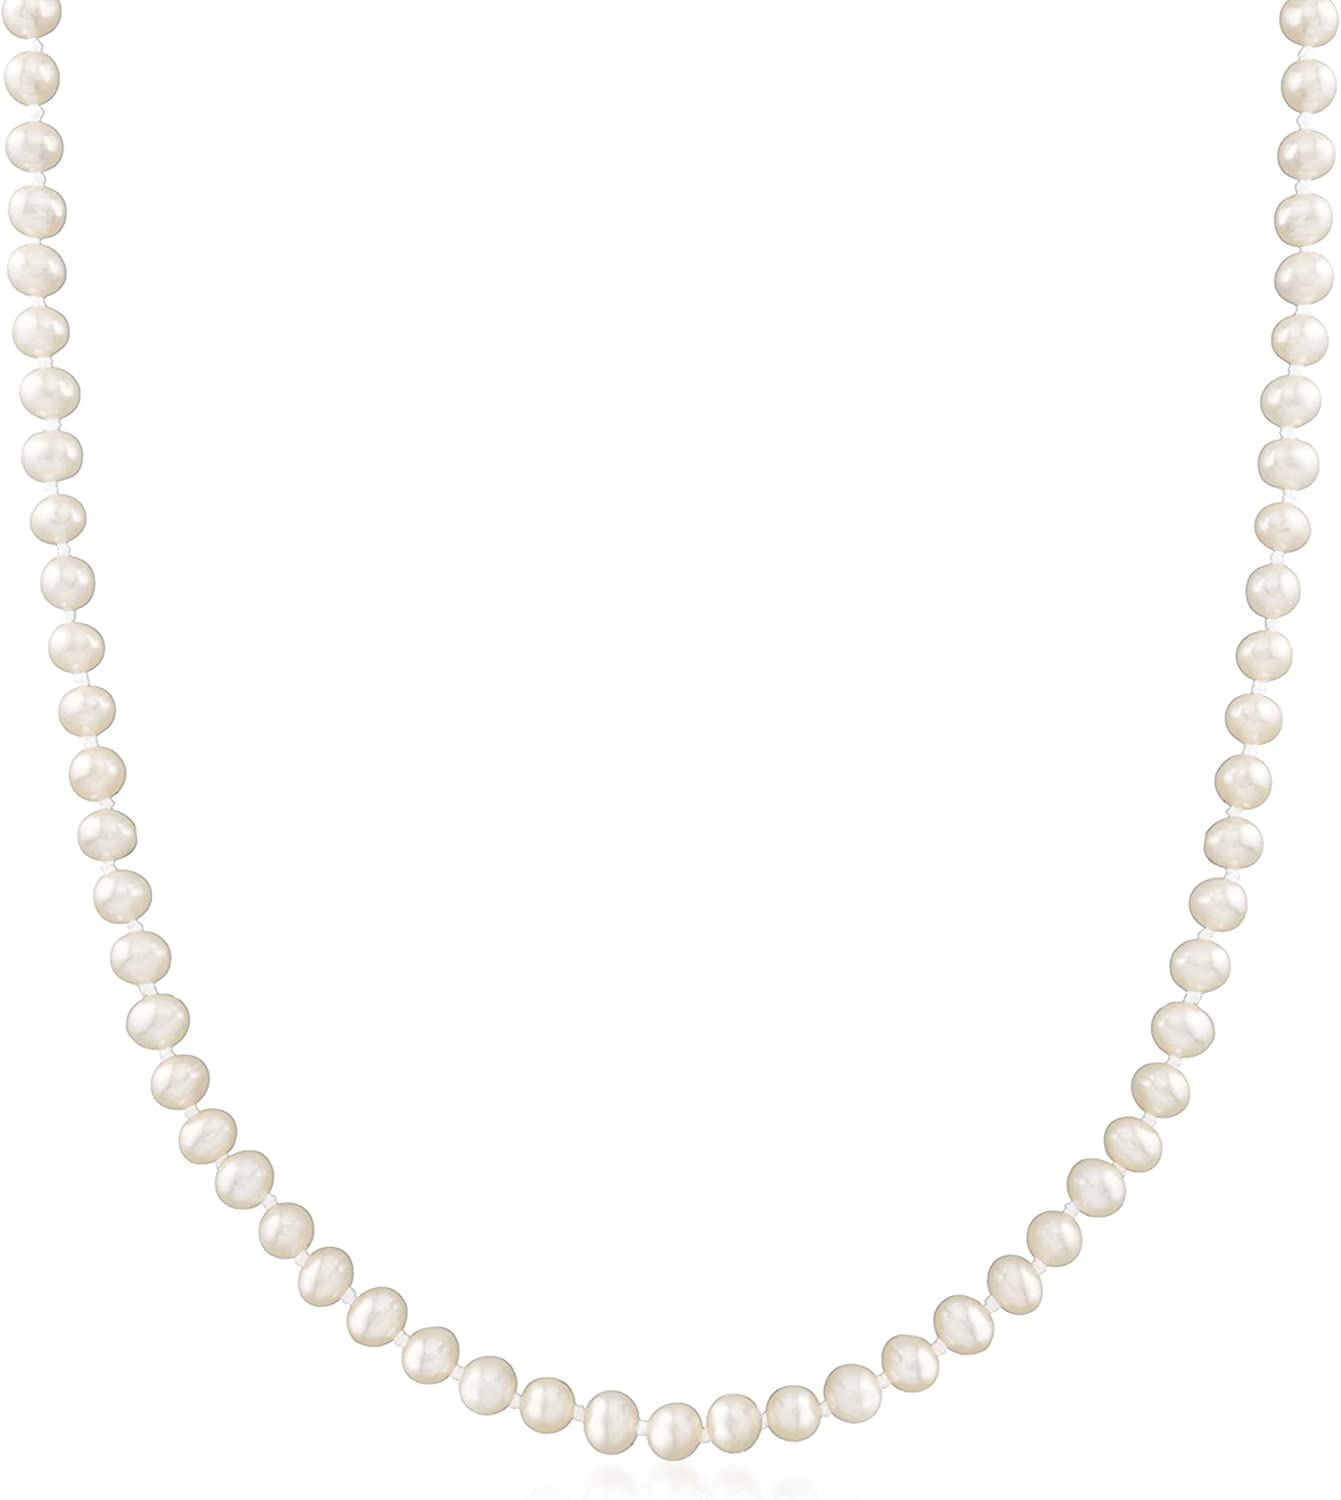 Ross-Simons 4-4.5mm Cultured Pearl Necklace in 14kt Yellow Gold